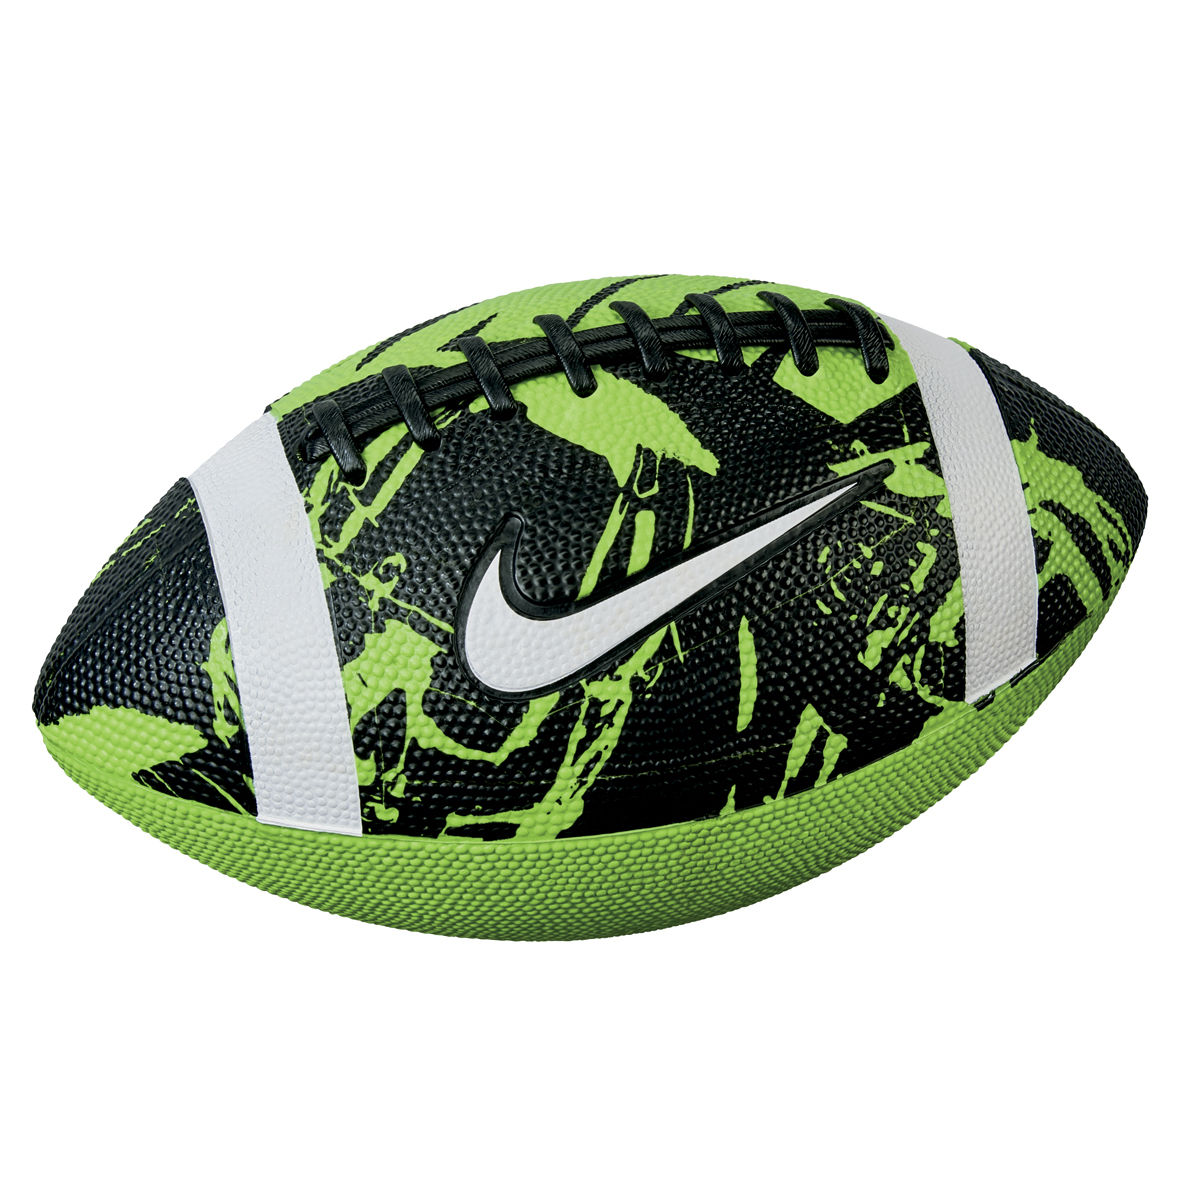 Nike Spin 3 Junior Football